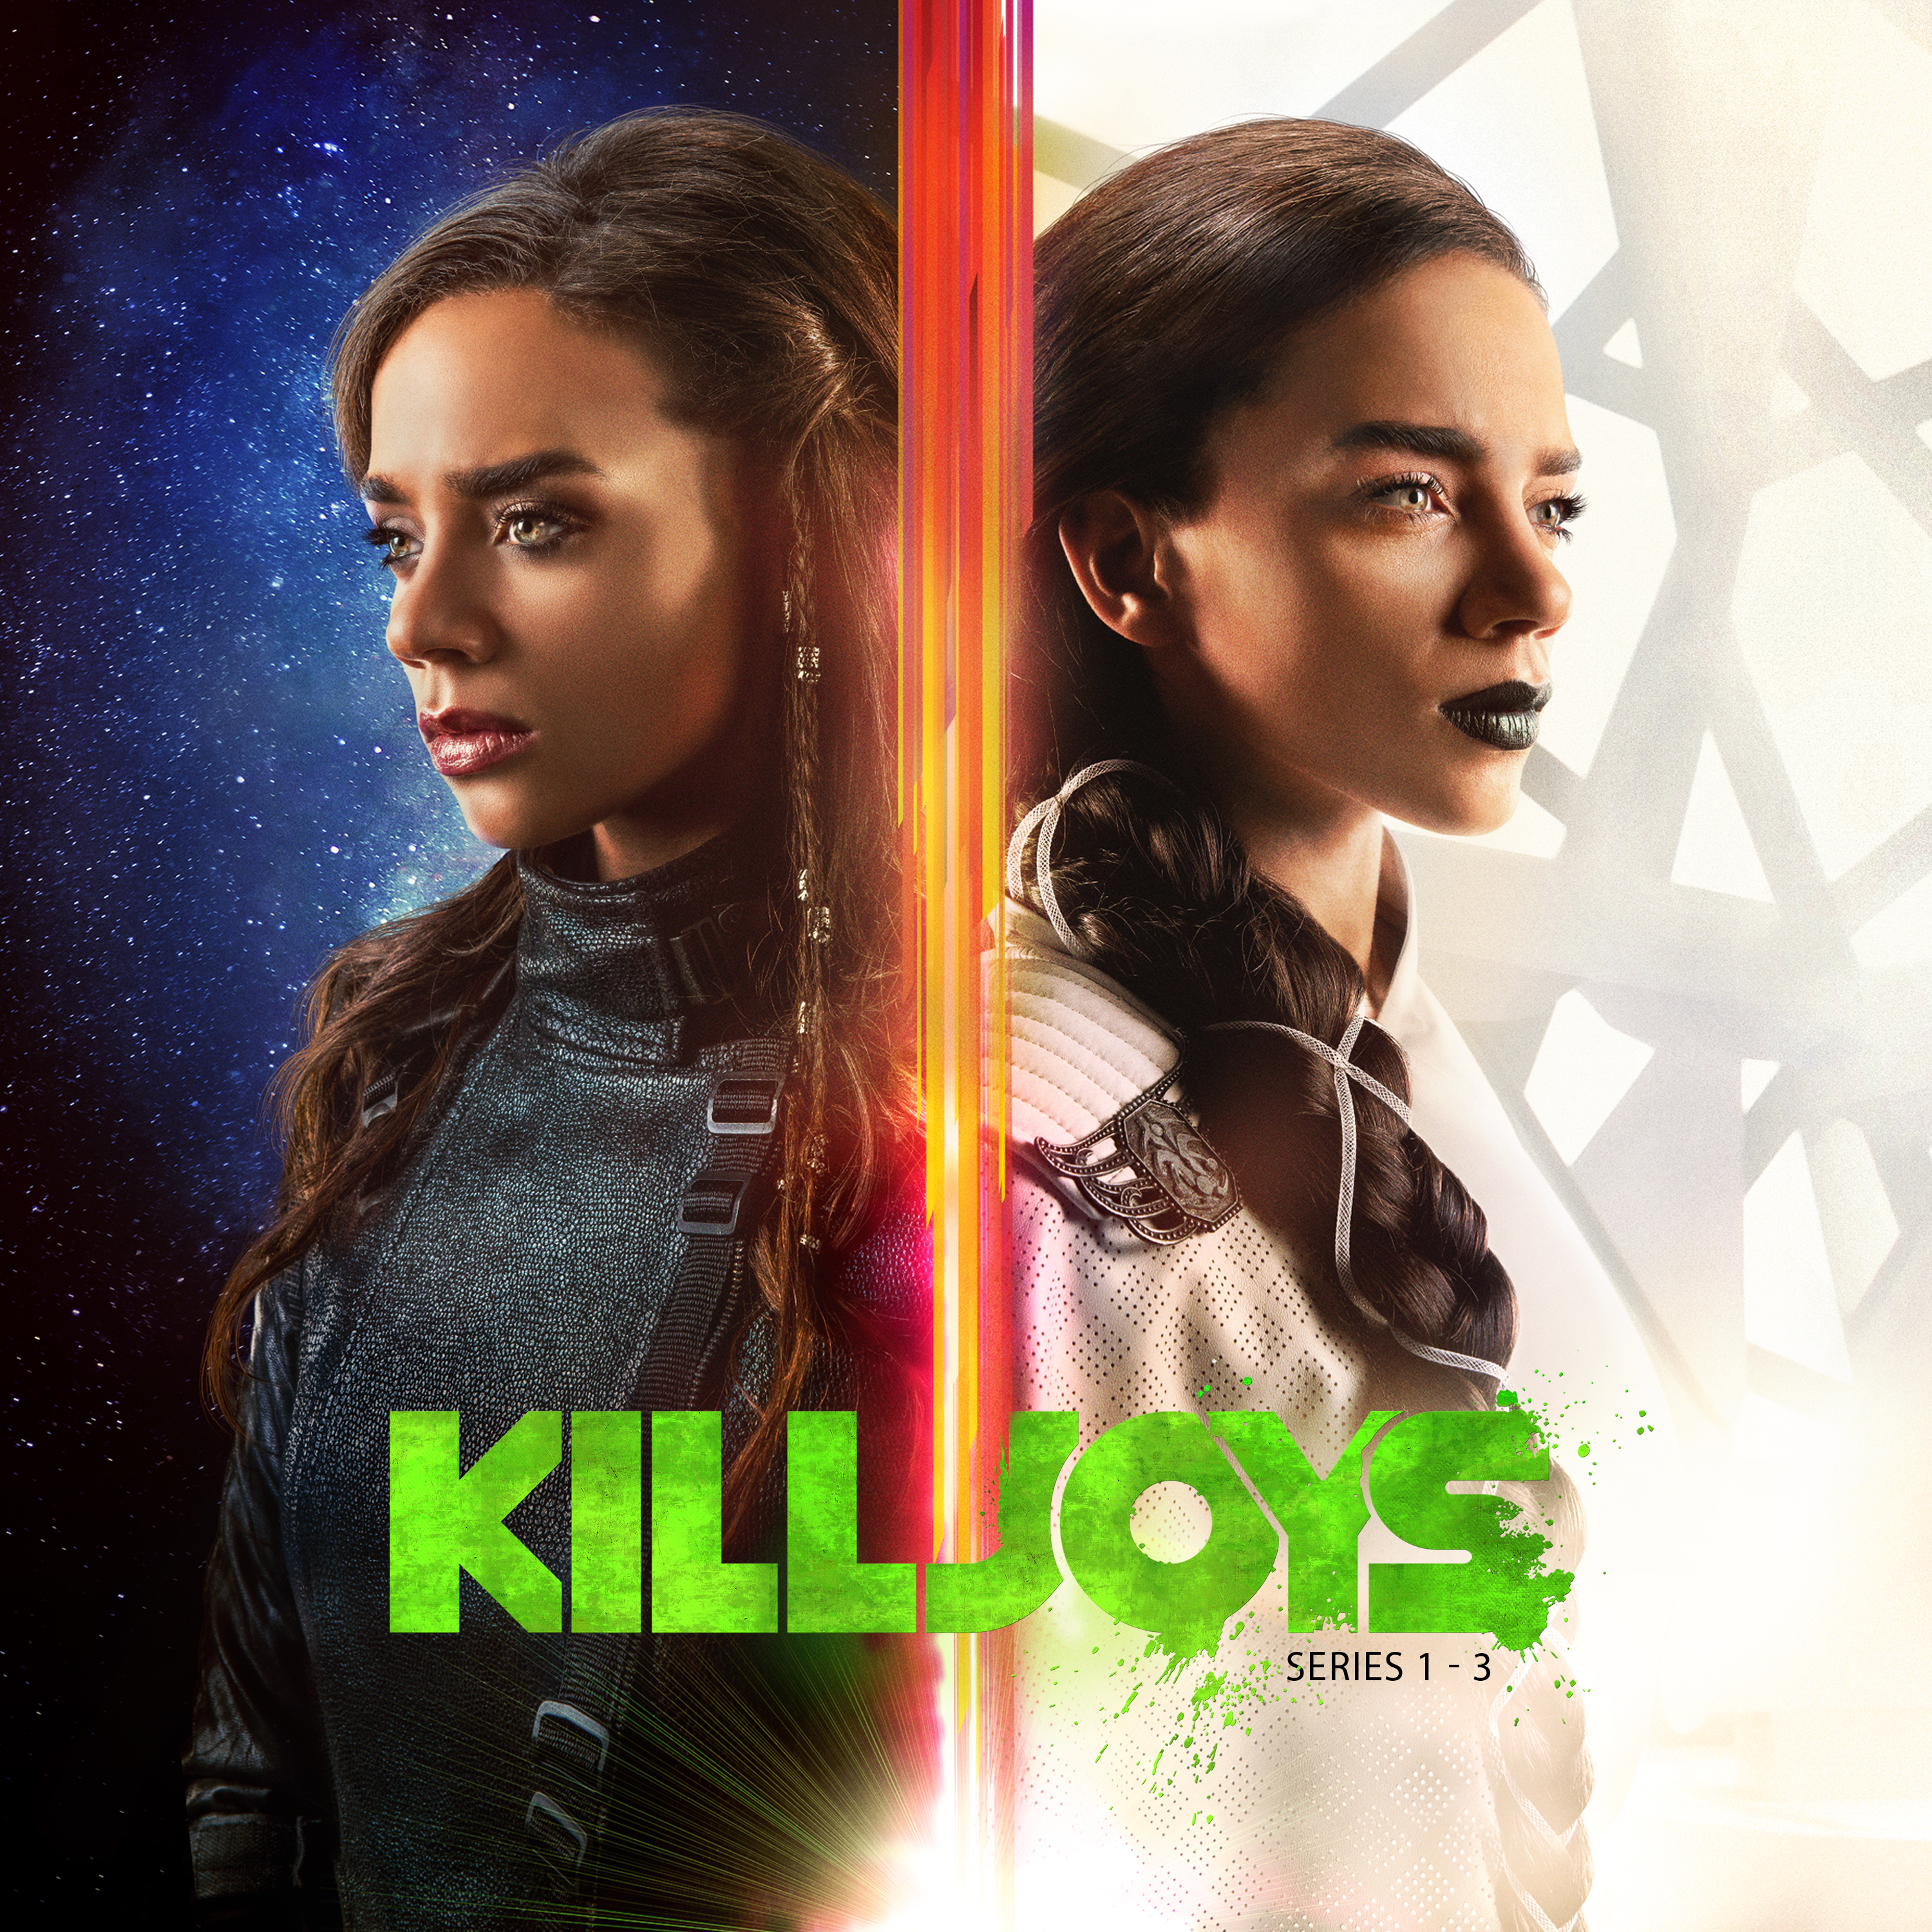 Killjoys' Space Adventure Now Streaming on VRV for US | Space